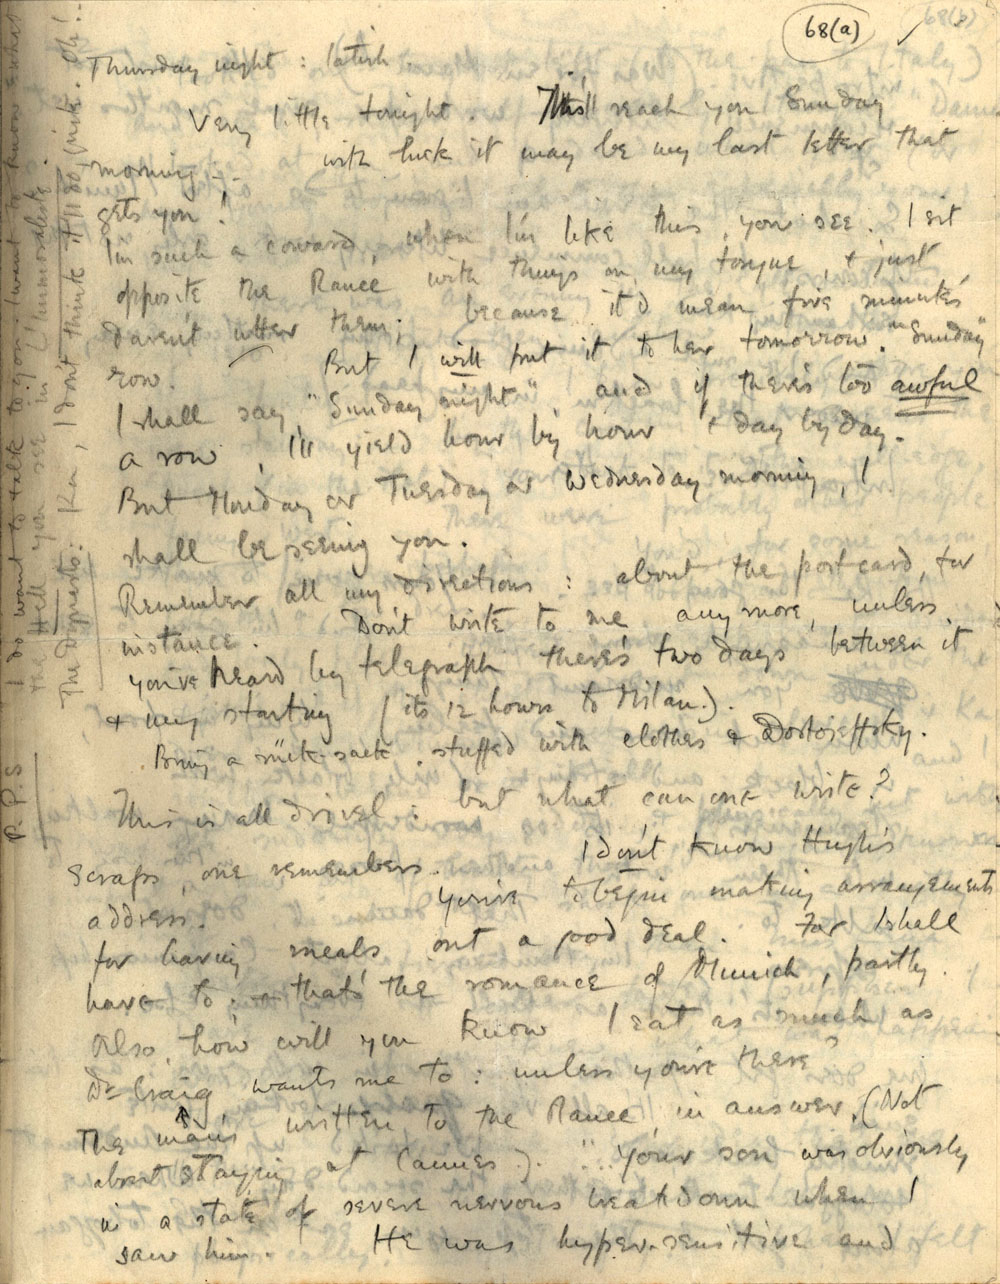 First page of a letter from Rupert Brooke to 'Ka' Cox, 'Thursday night: latish' [January 1912] (RCB/L/4, 68(a) recto).